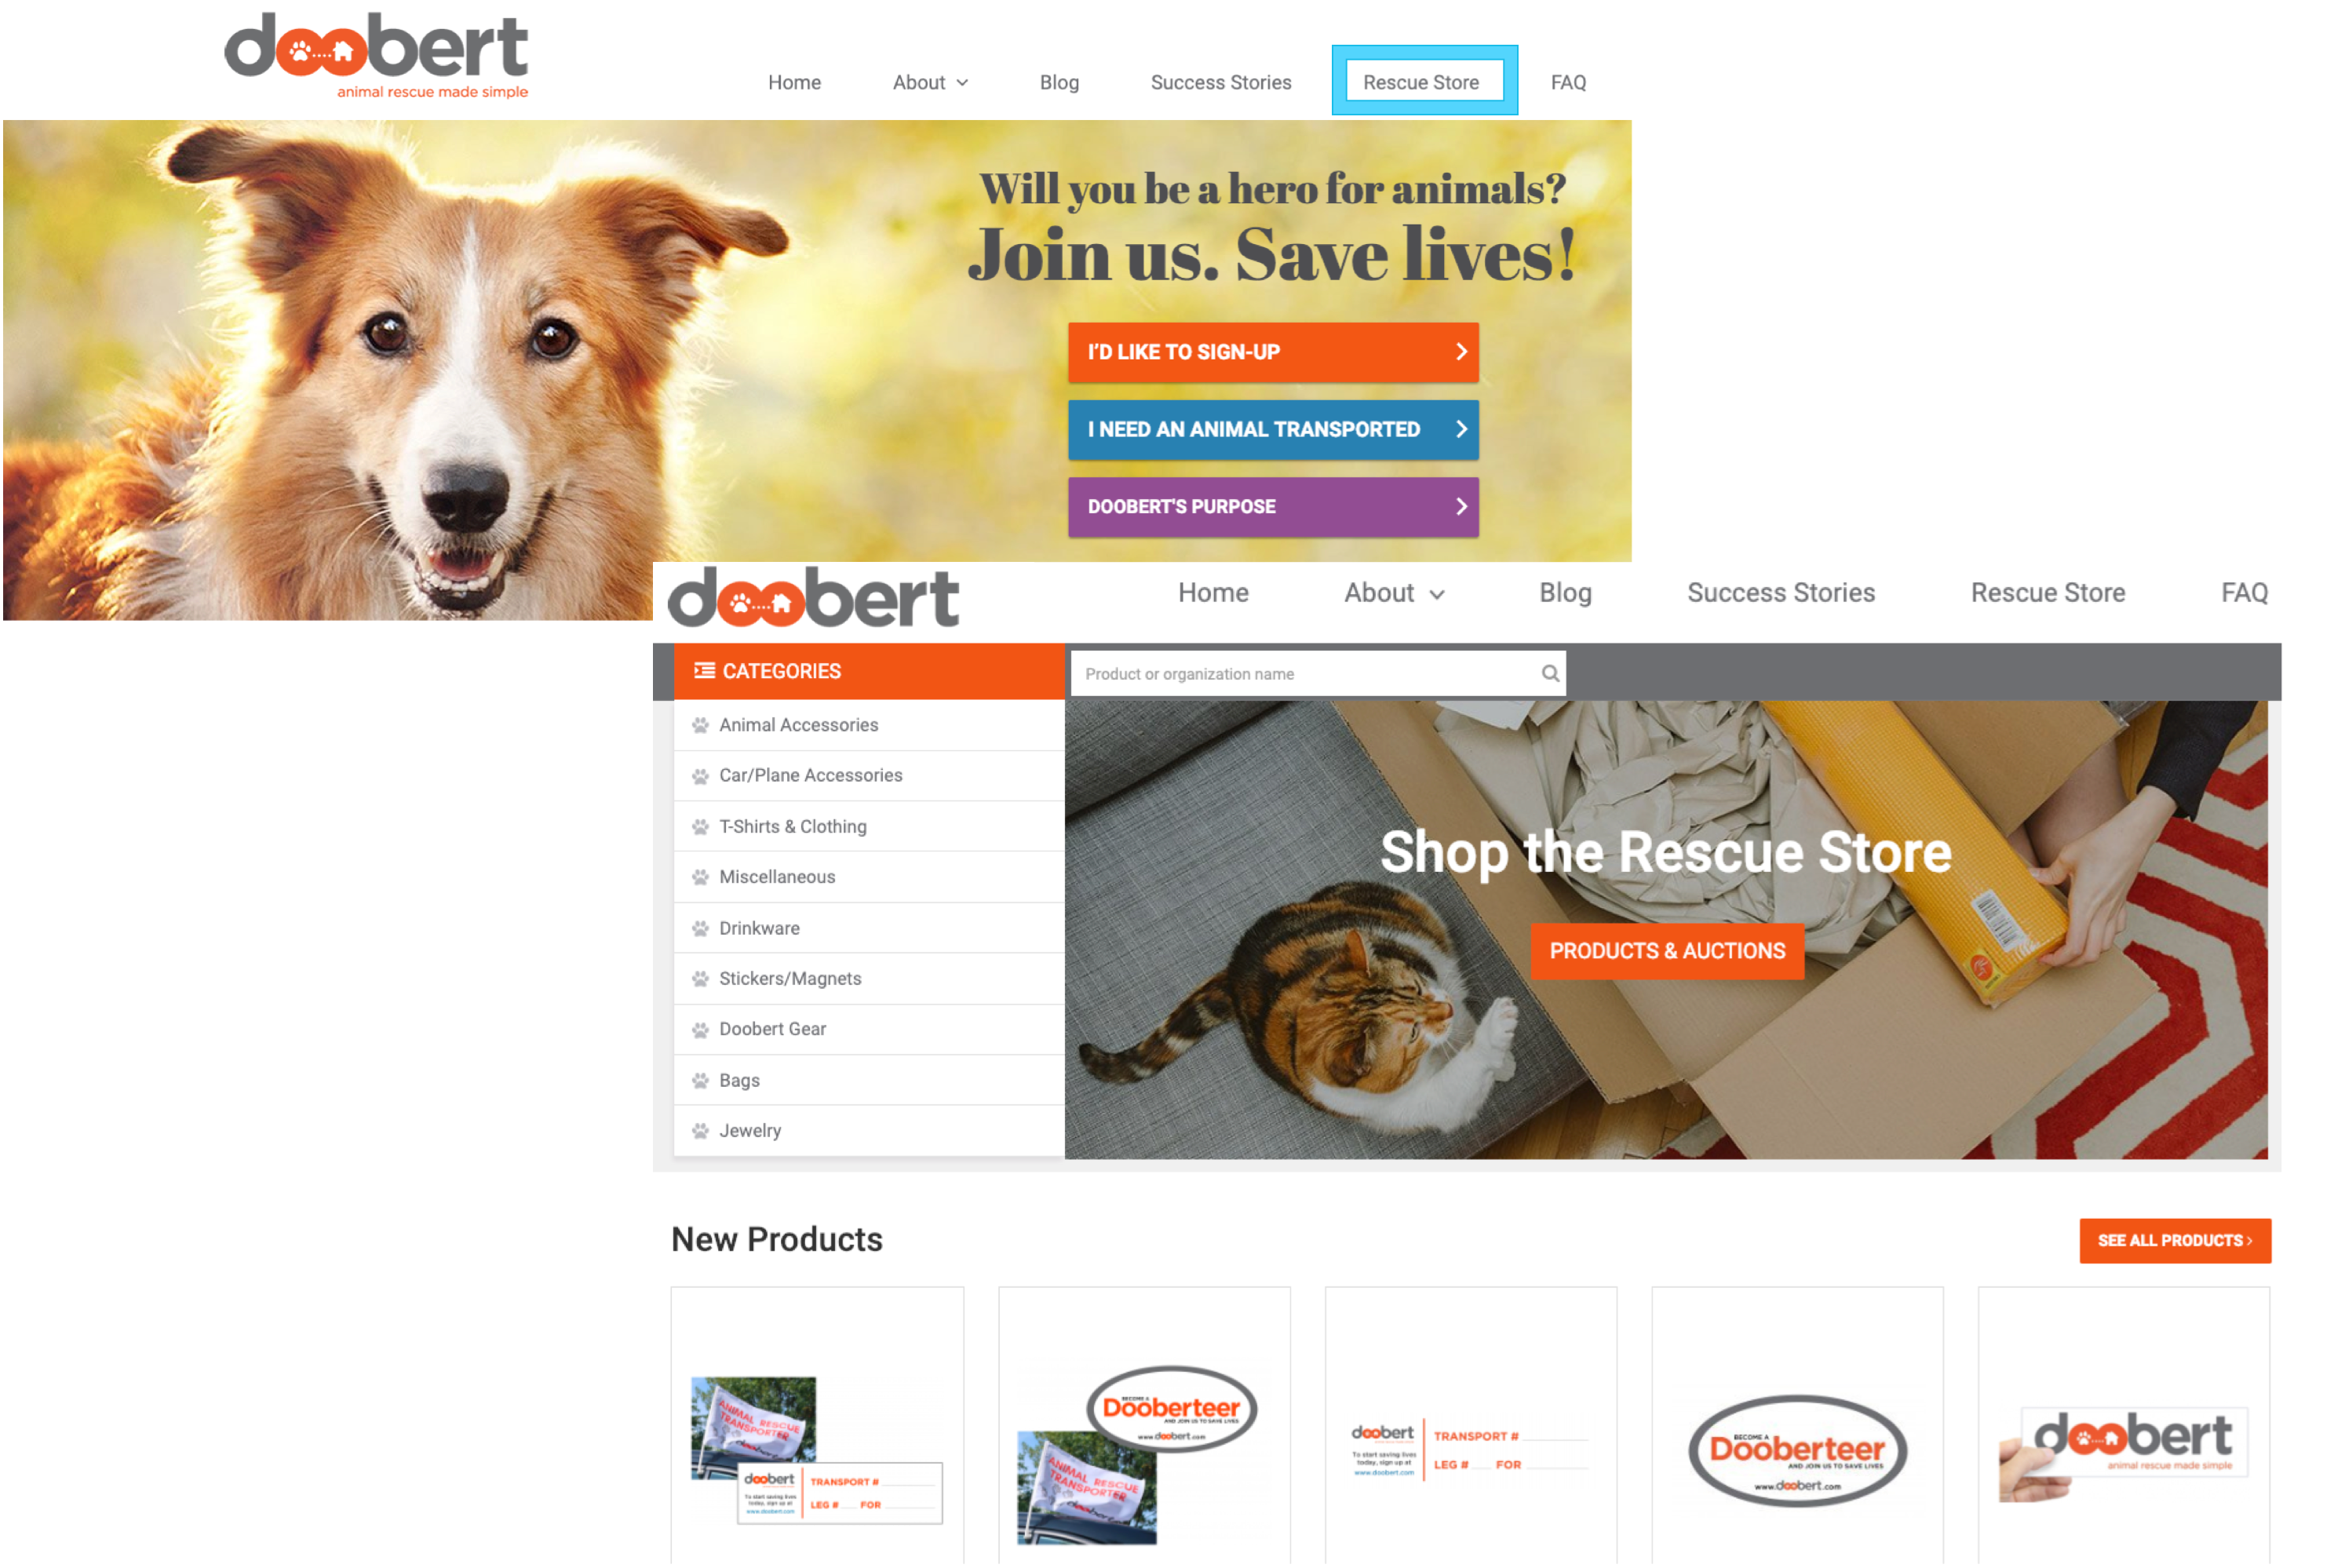 Doobert Rescue Store